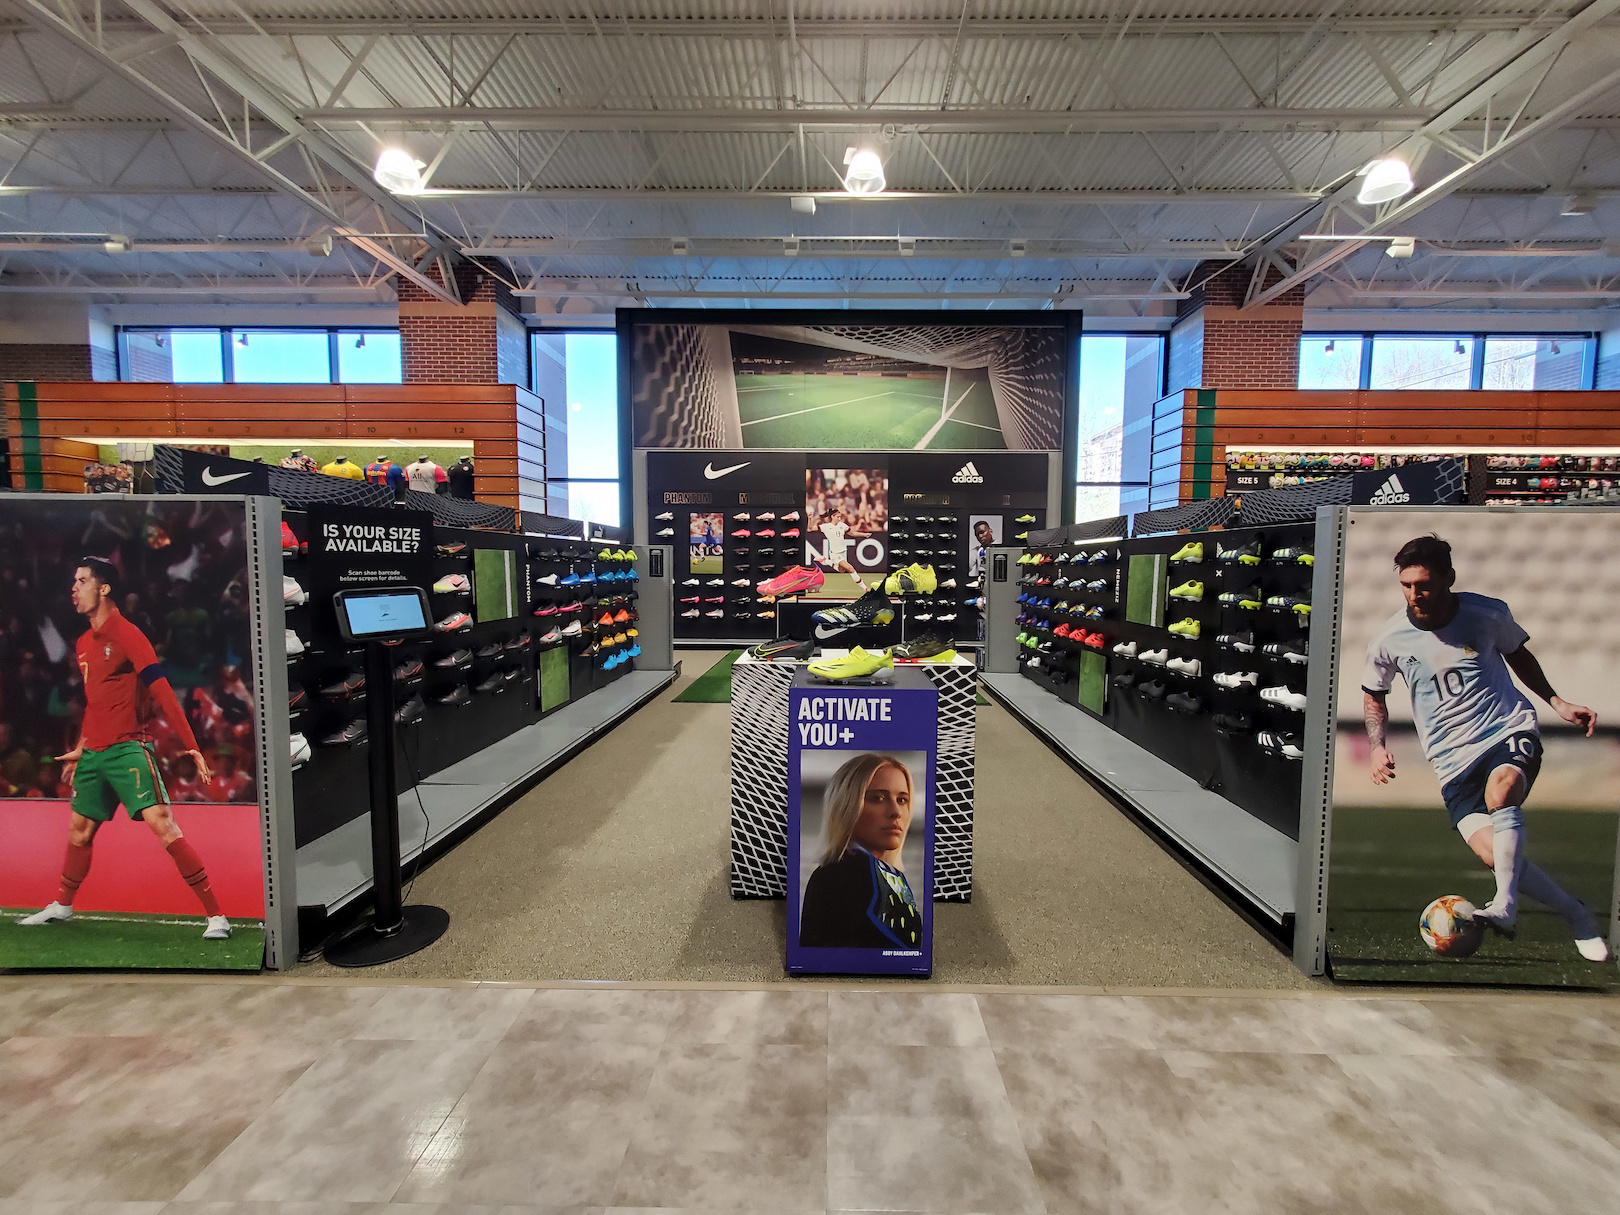 One of Dick's Sporting Goods' Soccer Shops, which began opening in select stores in April.